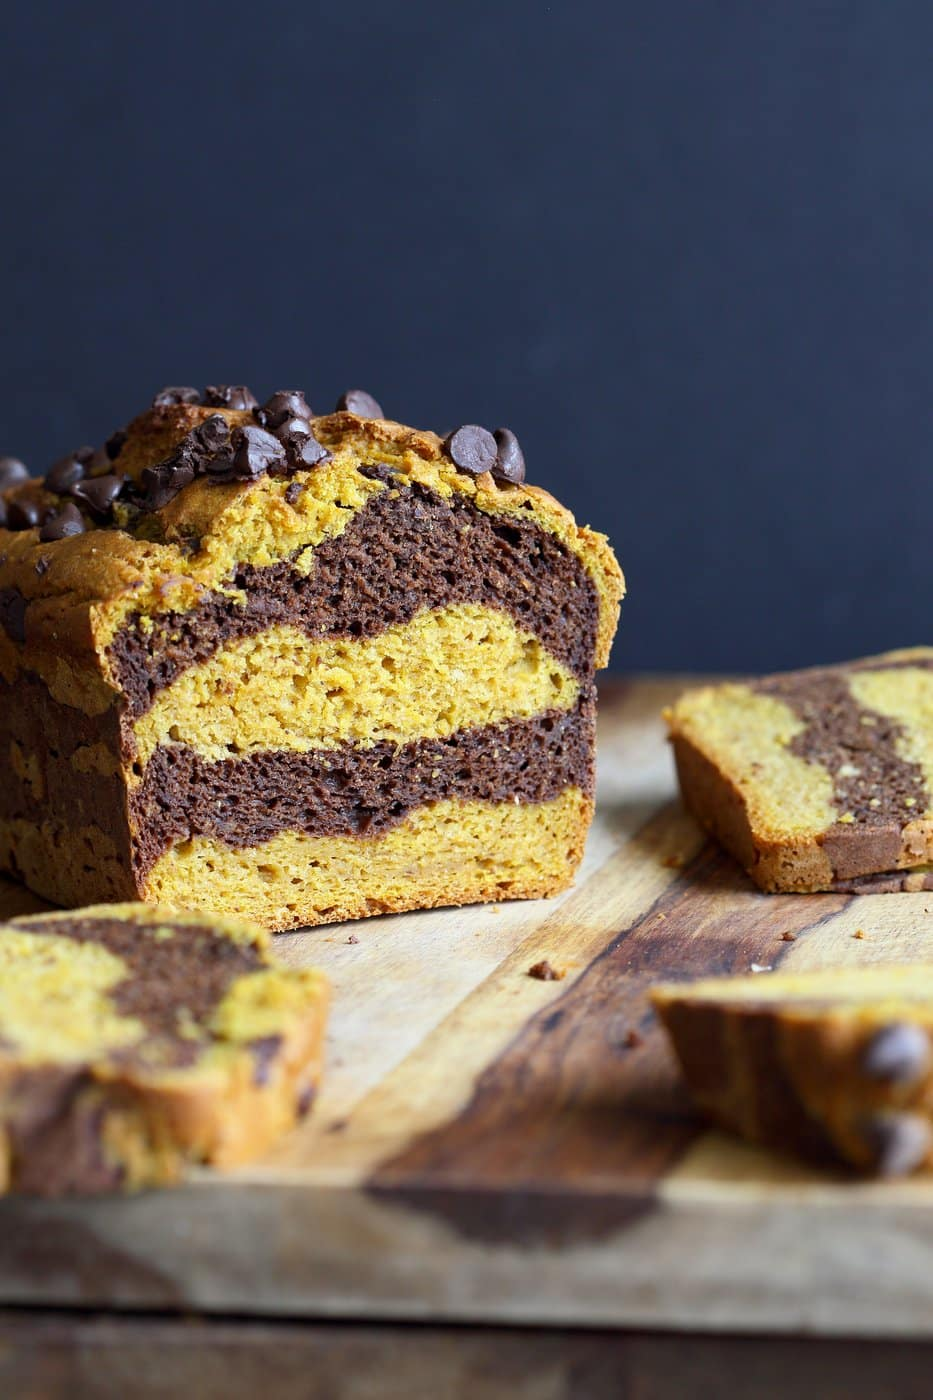 26 Creative and Delicious Turmeric Recipes: Marbled Turmeric Pumpkin Chocolate Bread